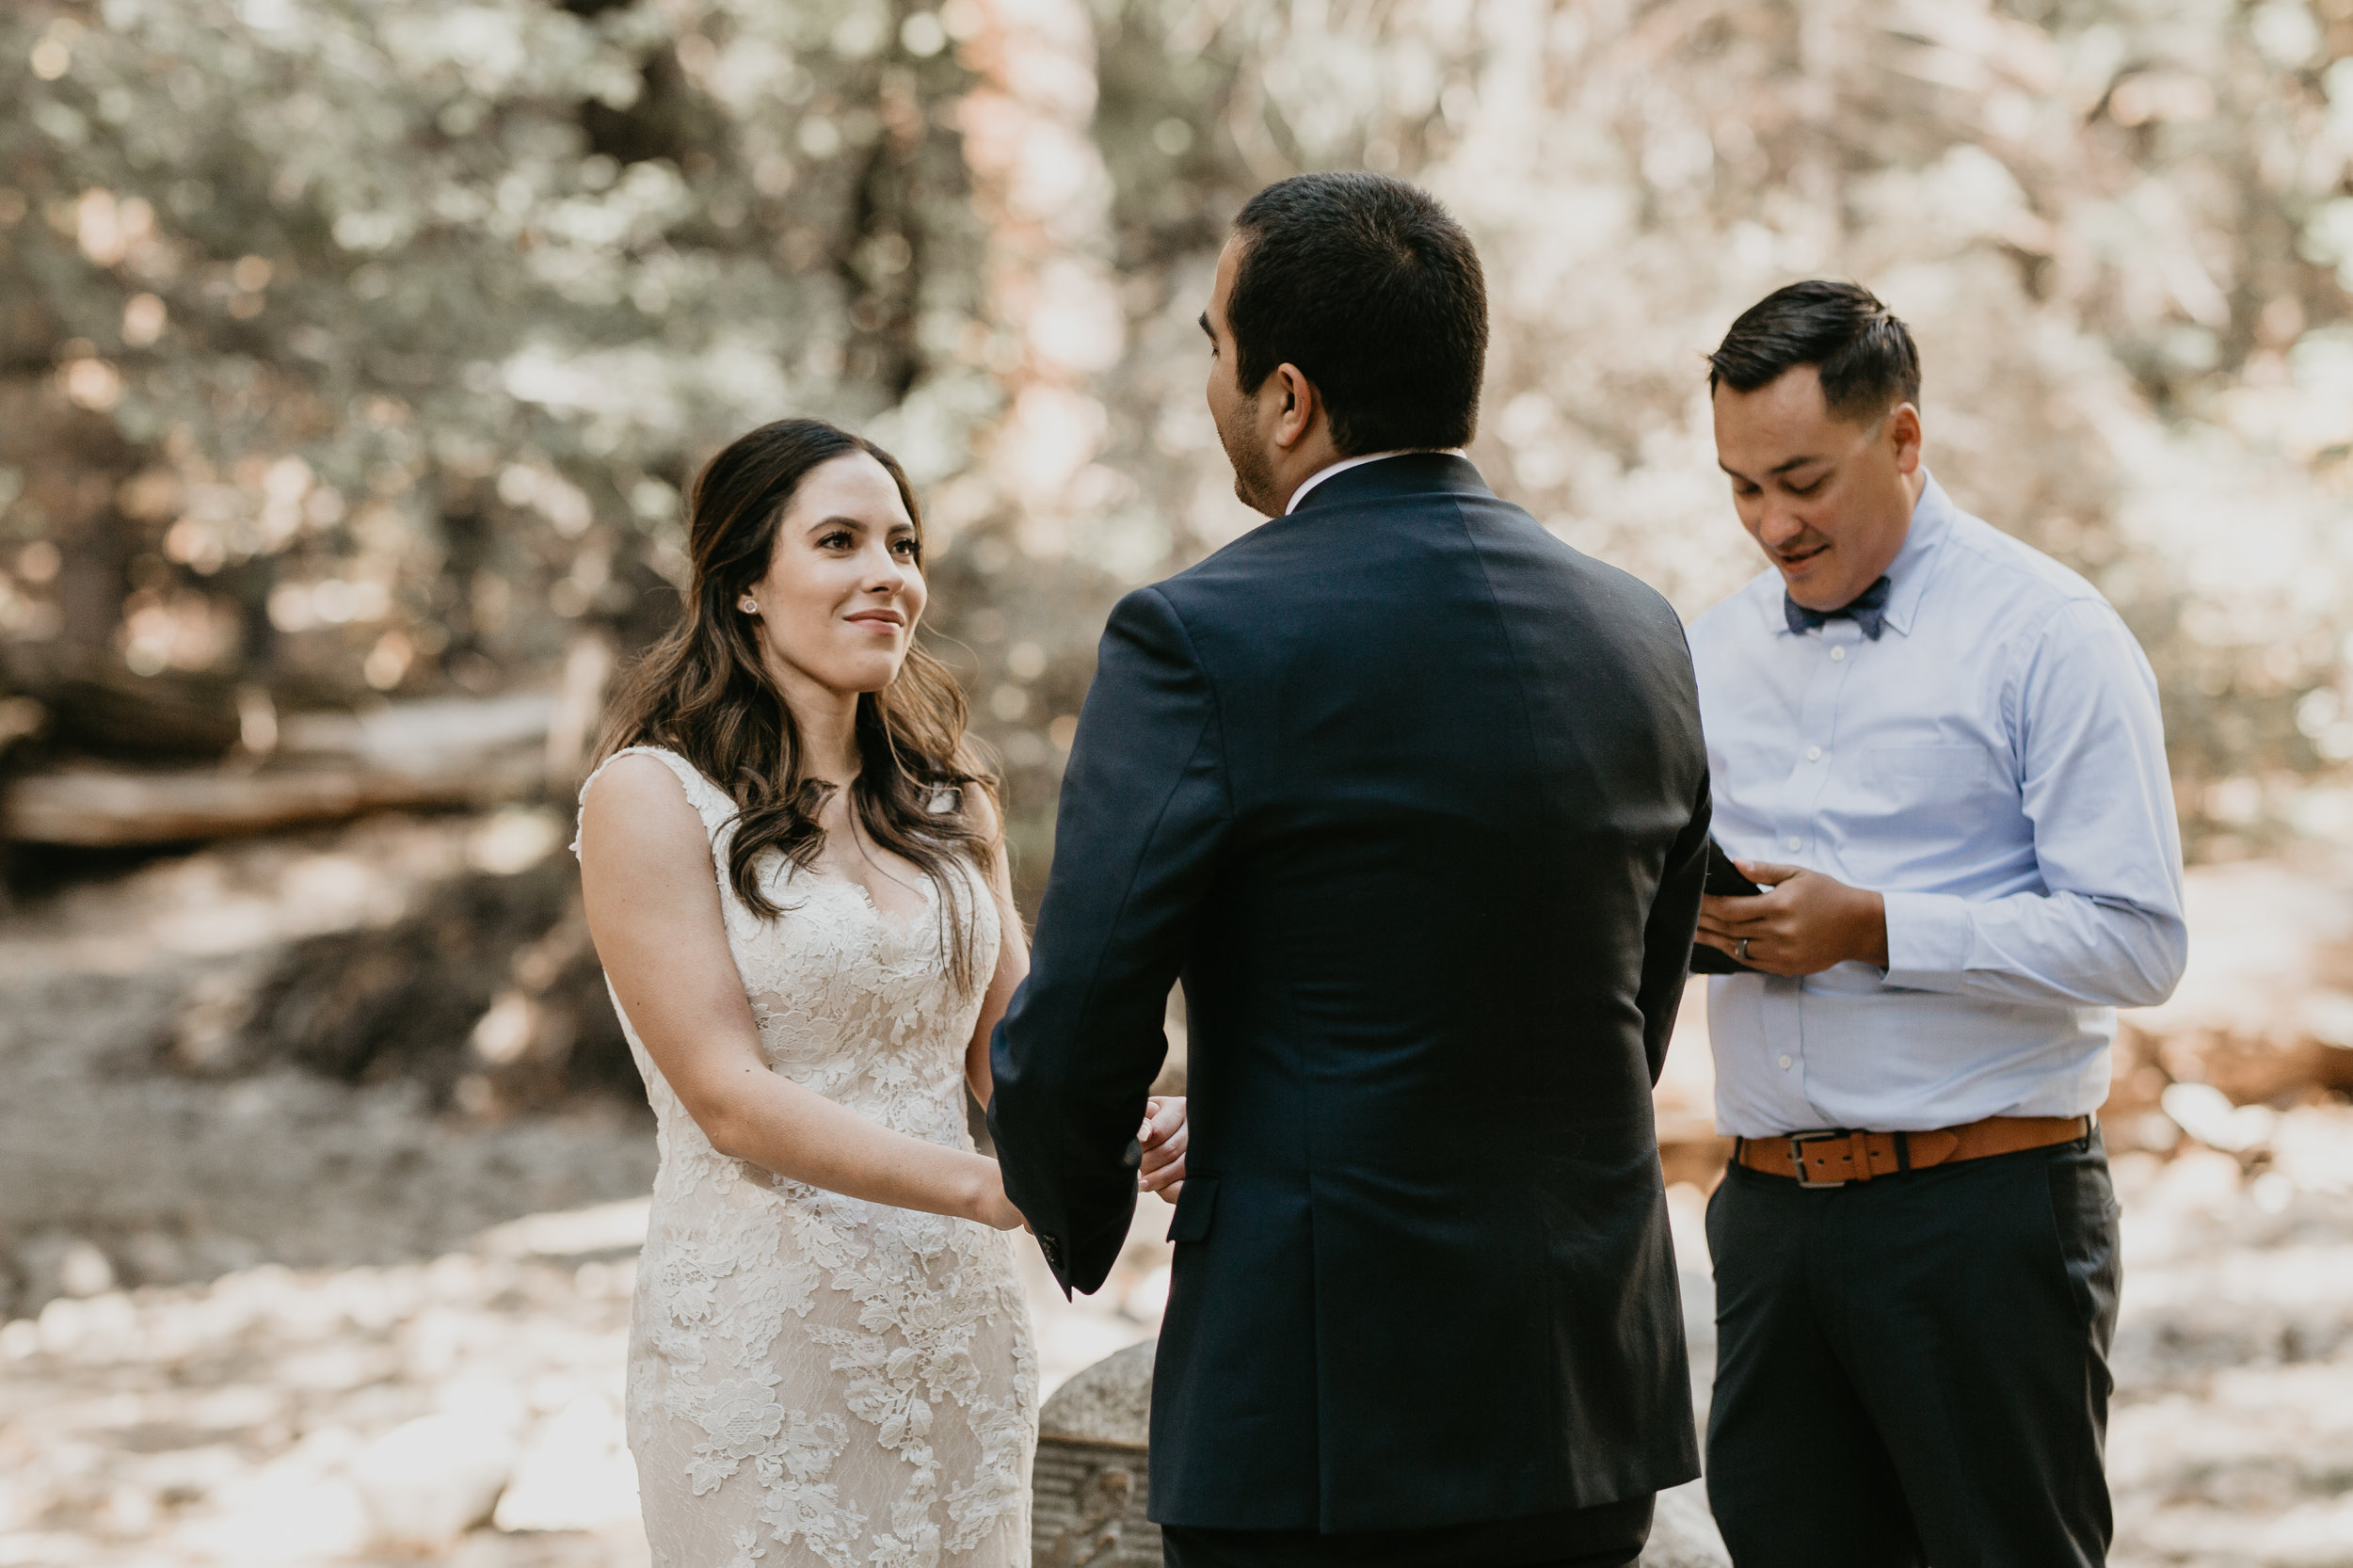 nicole-daacke-photography-intimate-elopement-wedding-yosemite-national-park-california-taft-point-sunset-photos-yosemite-valley-tunnel-view-first-look-sunrise-golden-granite-hiking-adventure-wedding-adventurous-elopement-photographer-46.jpg